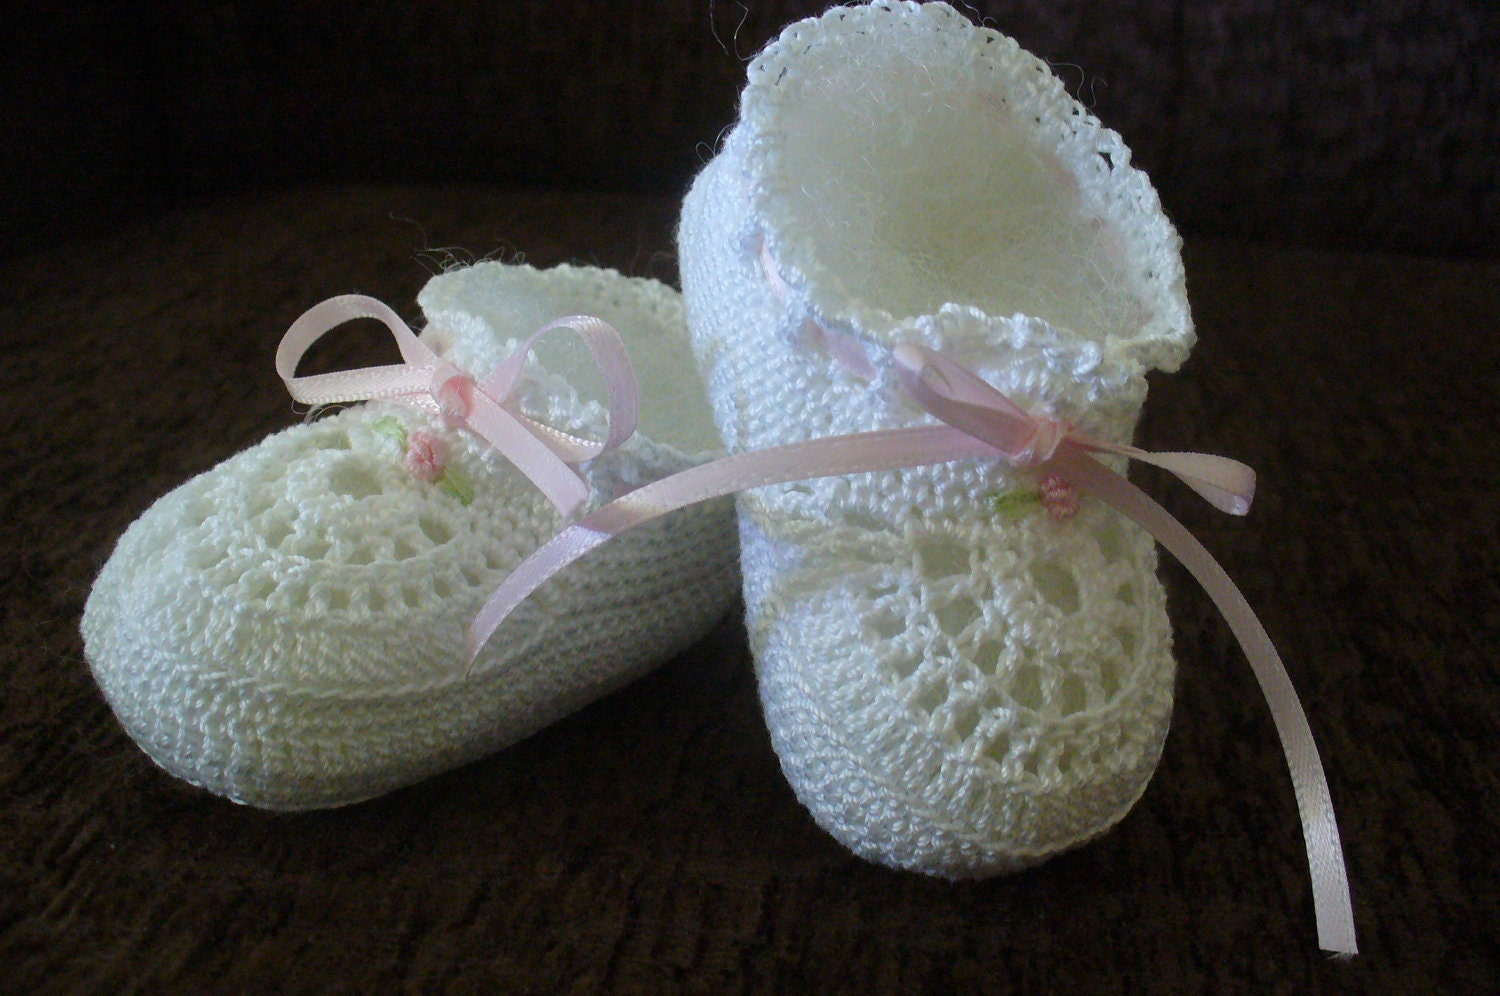 Crochet Patterns With Thread : Thread Crochet Patterns Baby Booties